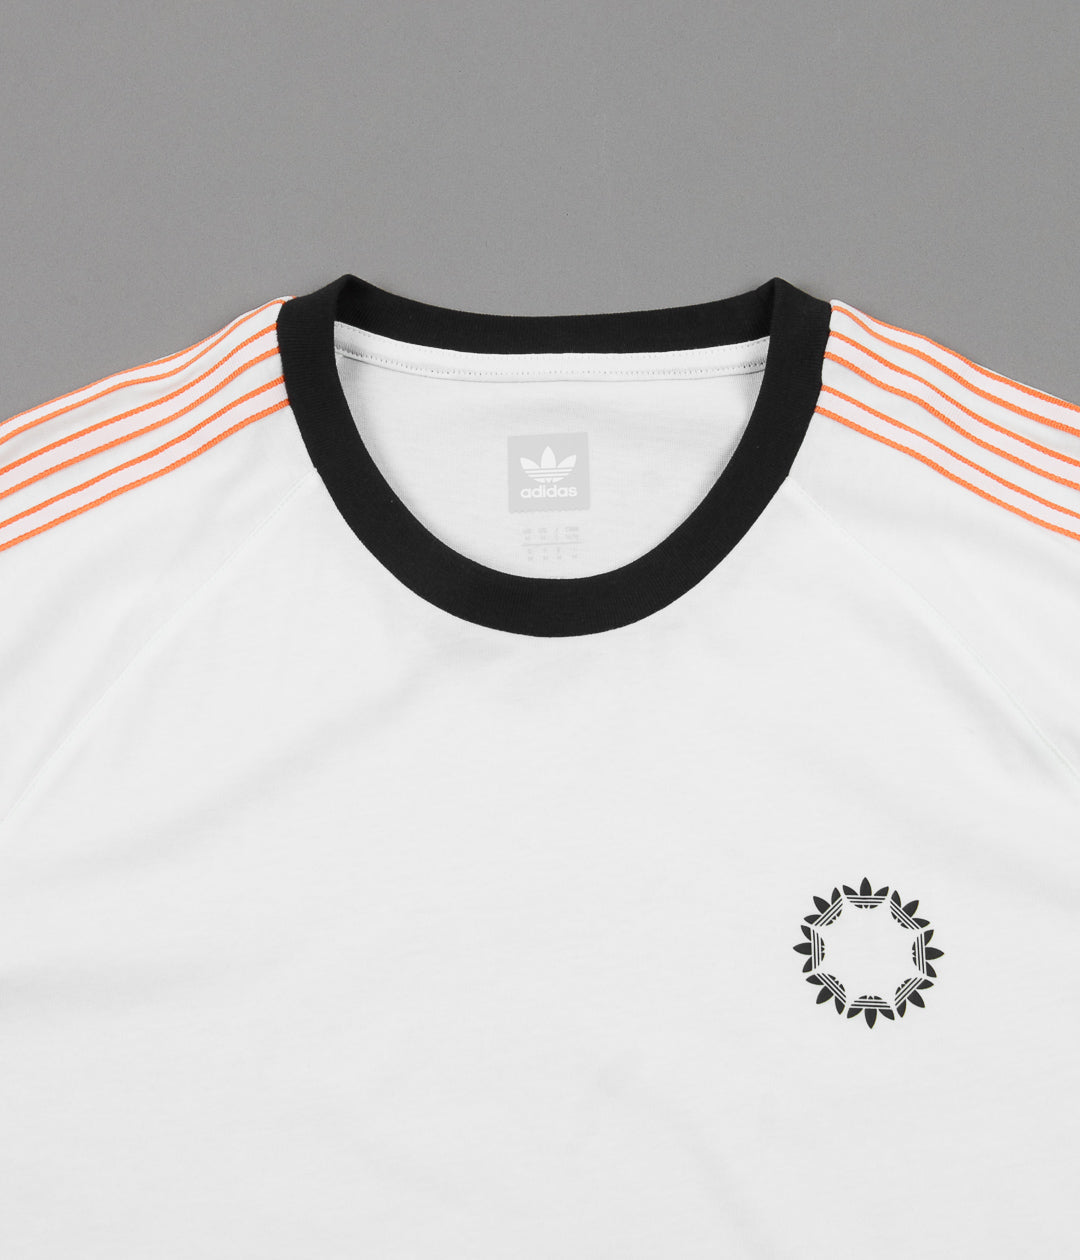 Adidas Club Jersey - Off White / Black / Core White / Amber Tint